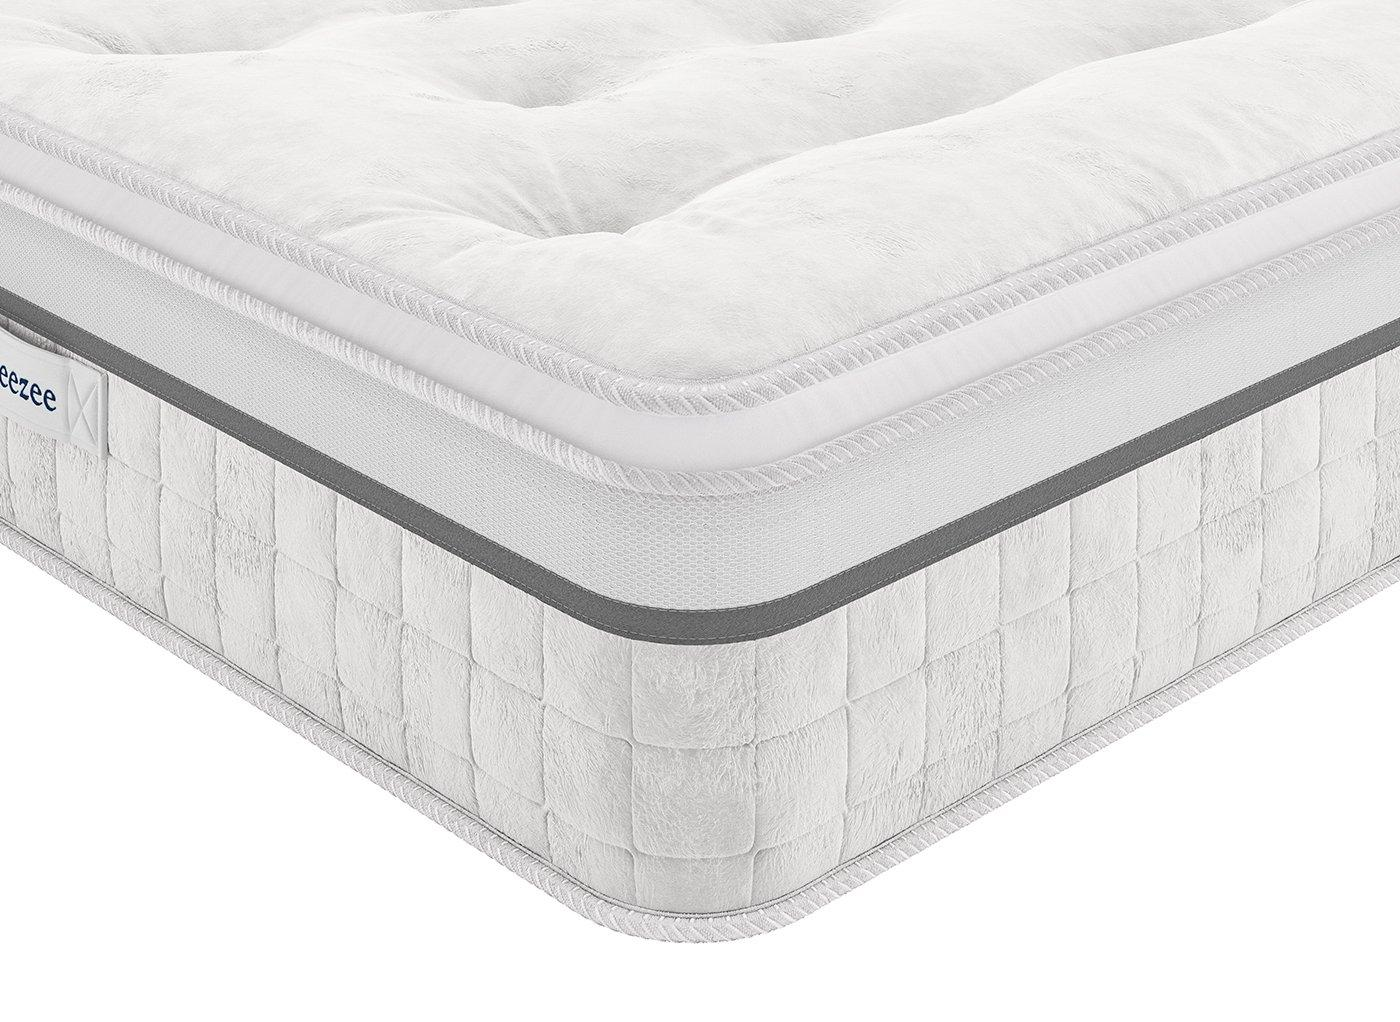 Sleepeezee Chelmsford SK Mattress Zipped 6'0 Super king